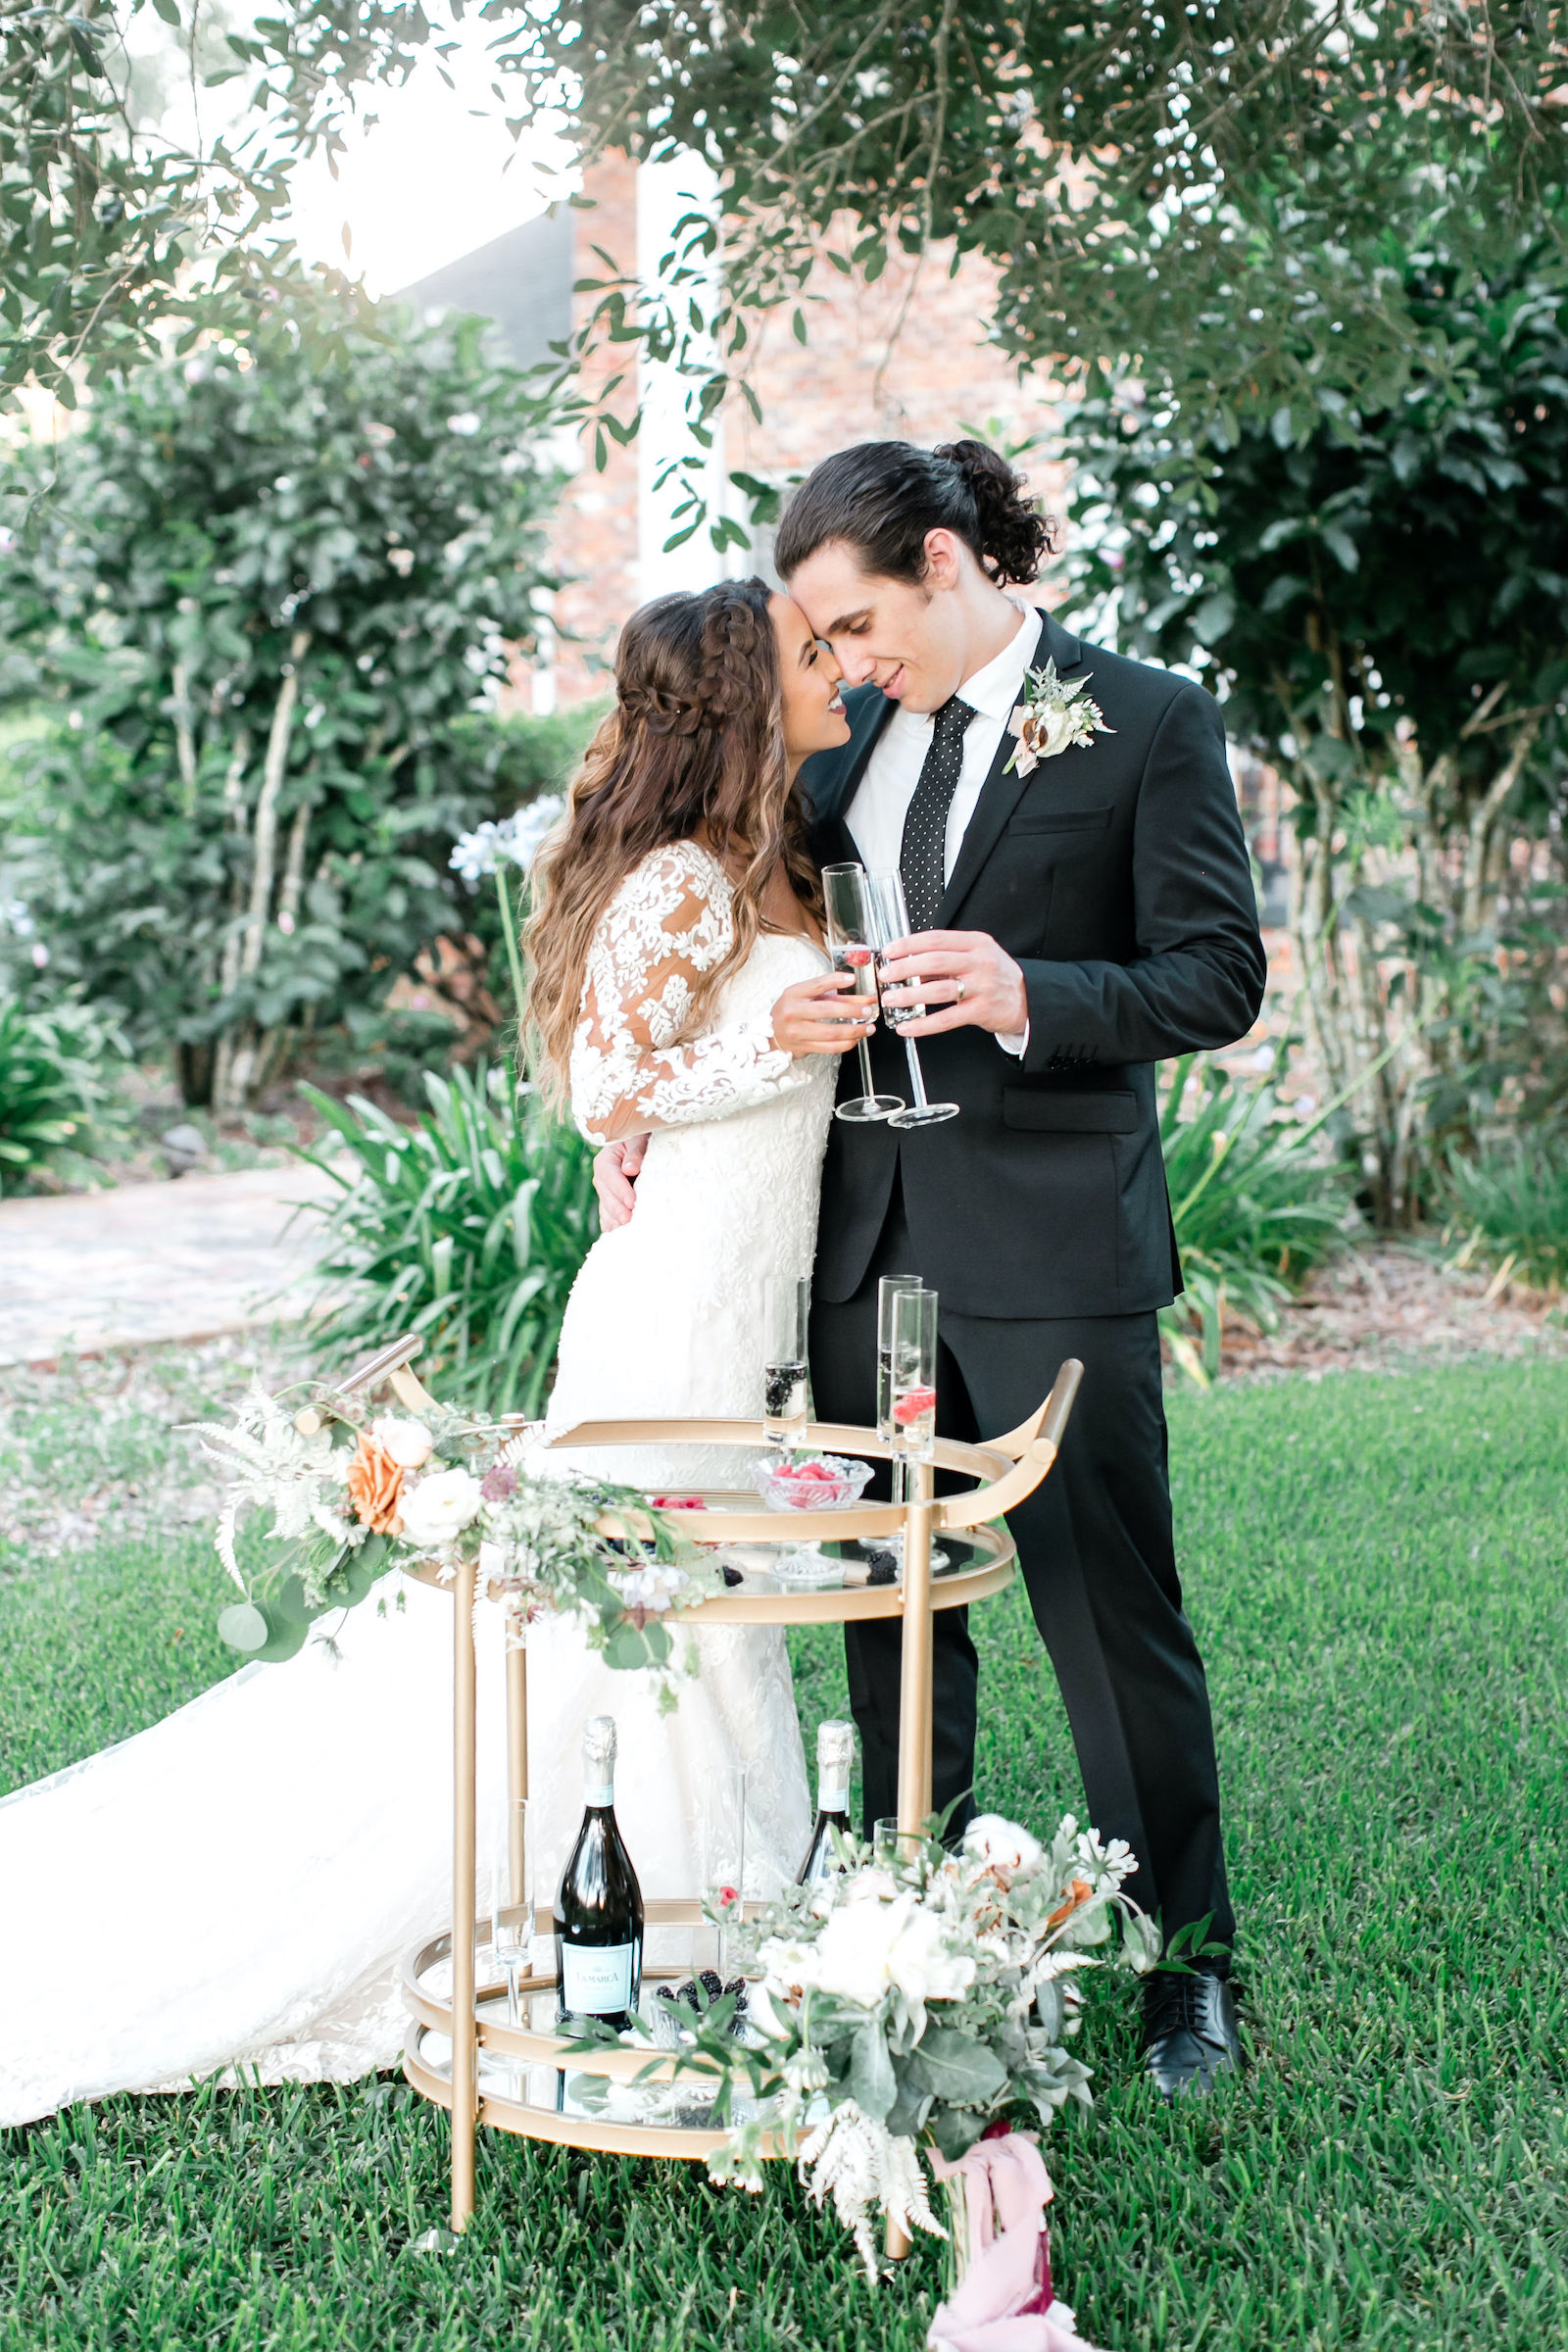 Outdoor Brunch Breakfast Wedding Champagne Cart Bubbly Bar with Gold Vintage Bar Cart and Fresh Berries | Lace Mermaid Long Sleeve Bridal Gown Wedding Dress | Groom in Classic Black Suit Tux